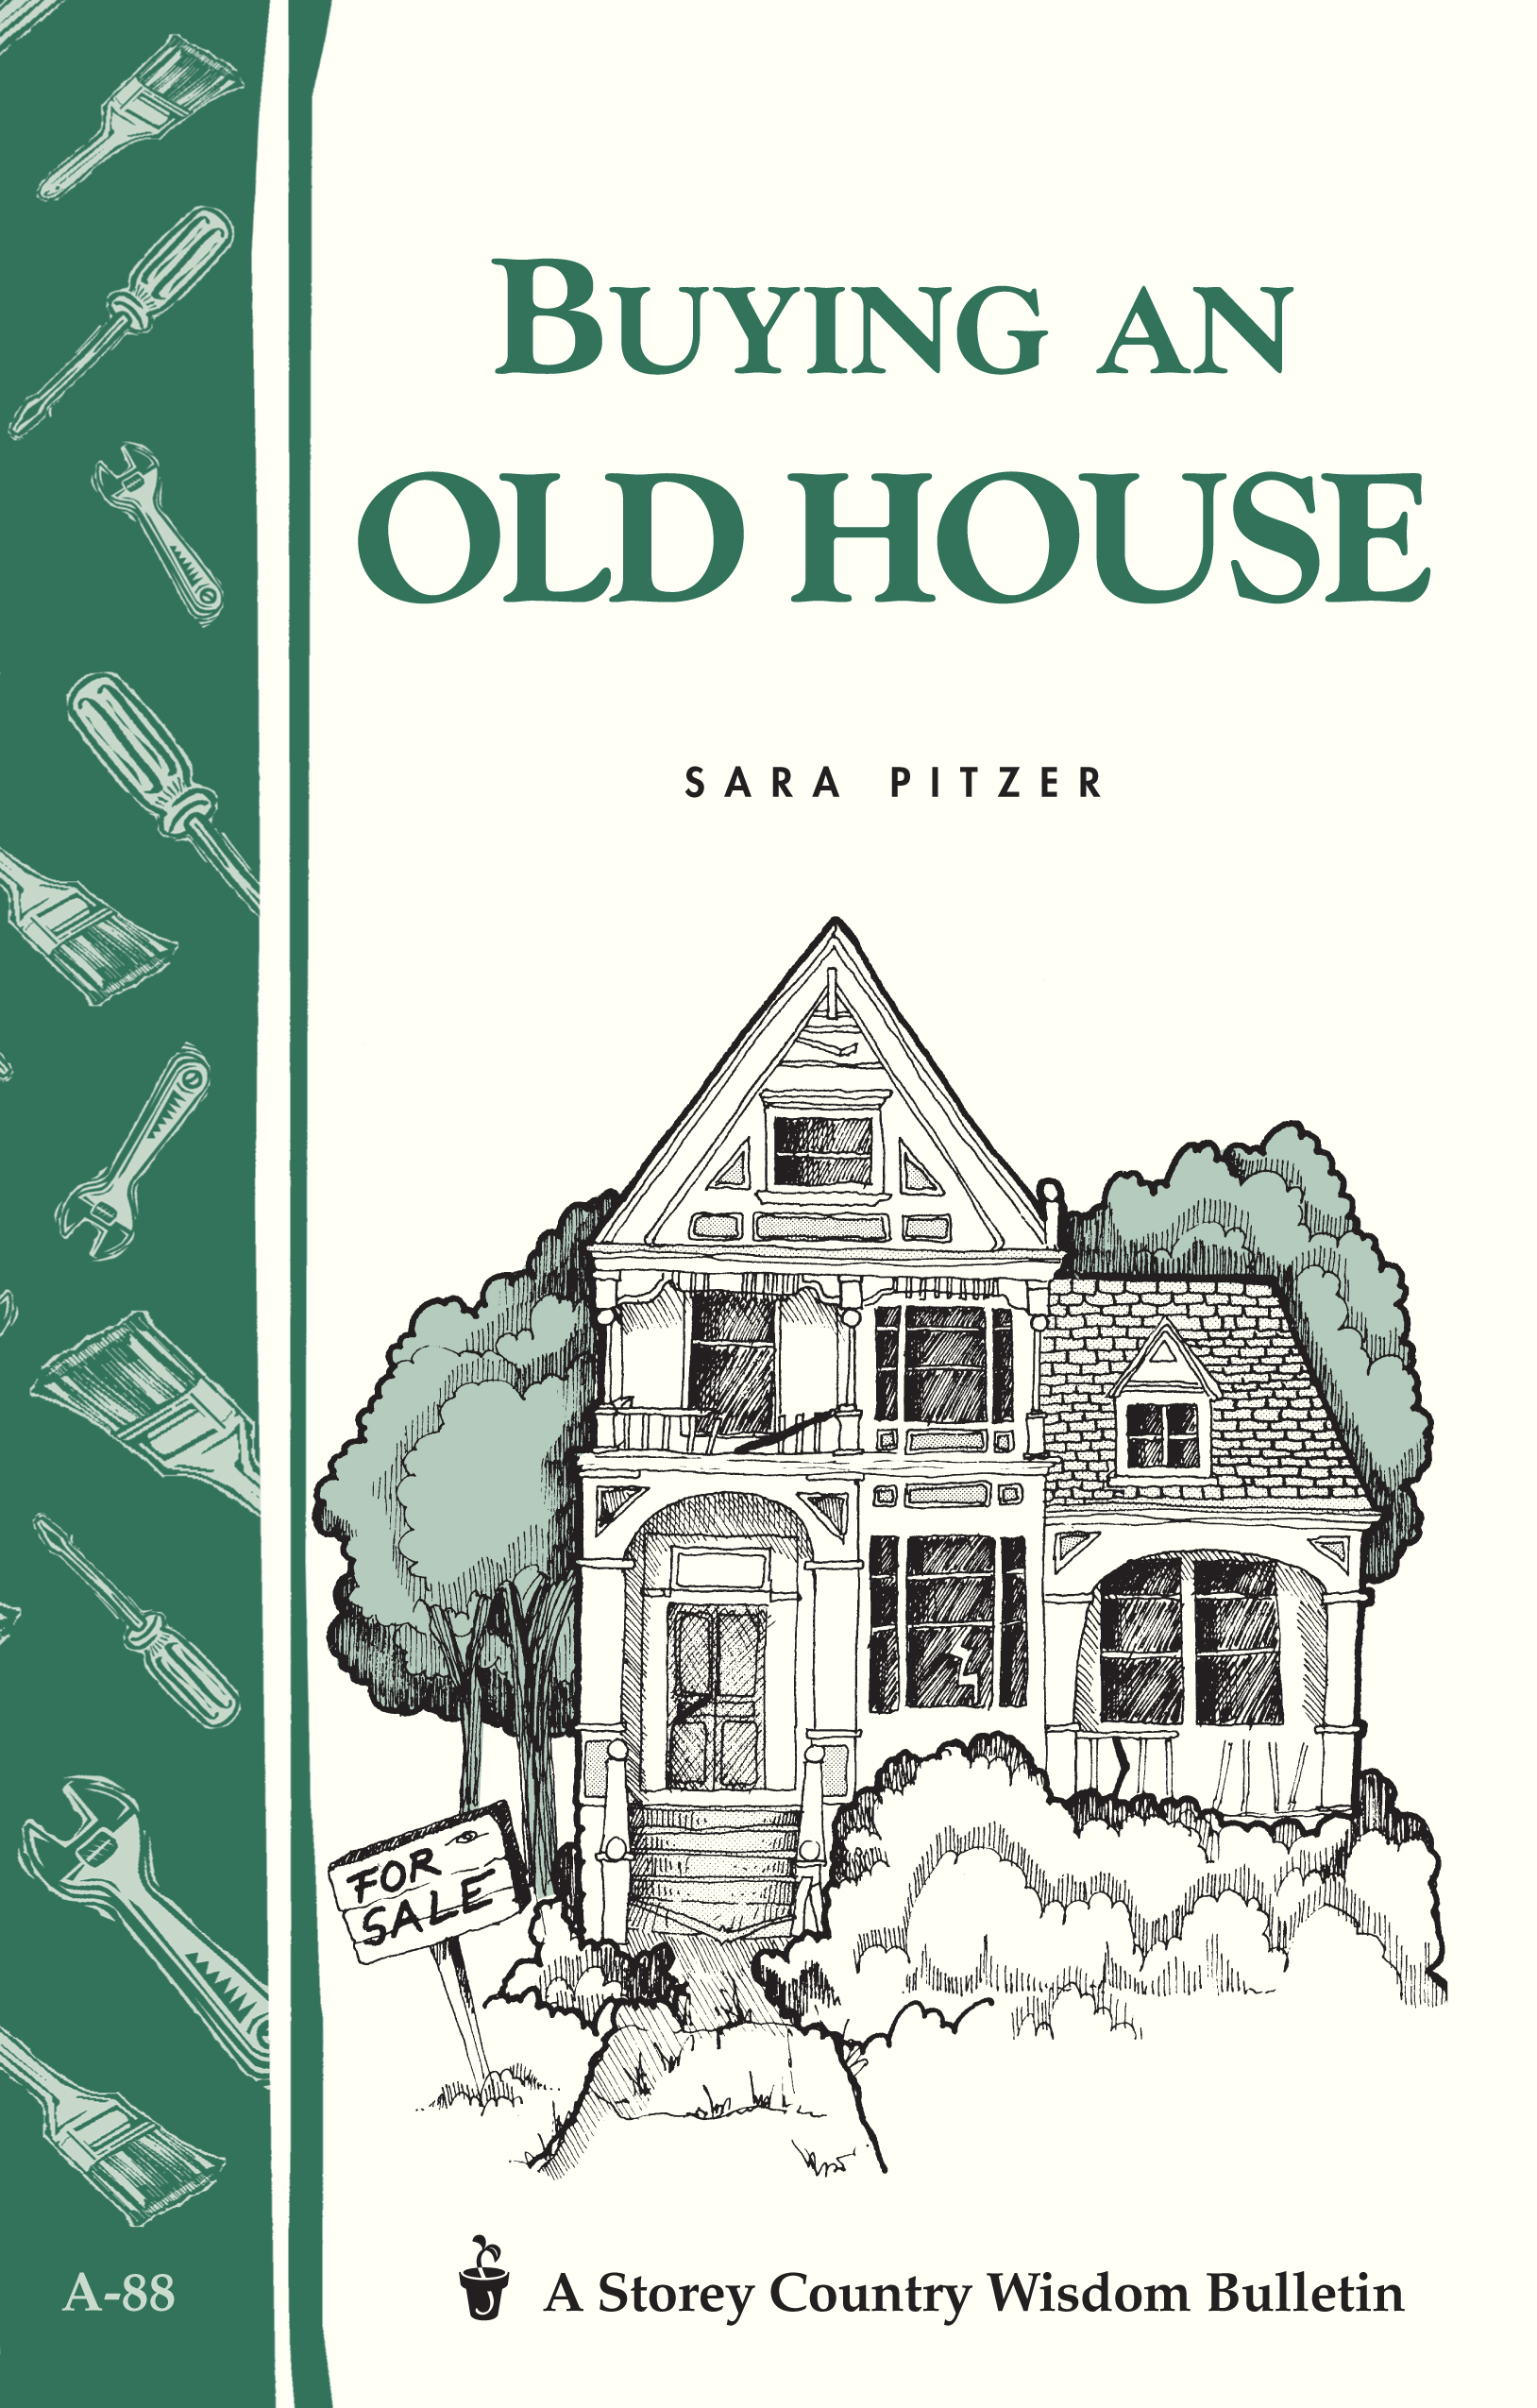 Buying an Old House Storey Country Wisdom Bulletin A-88 - Sara Pitzer